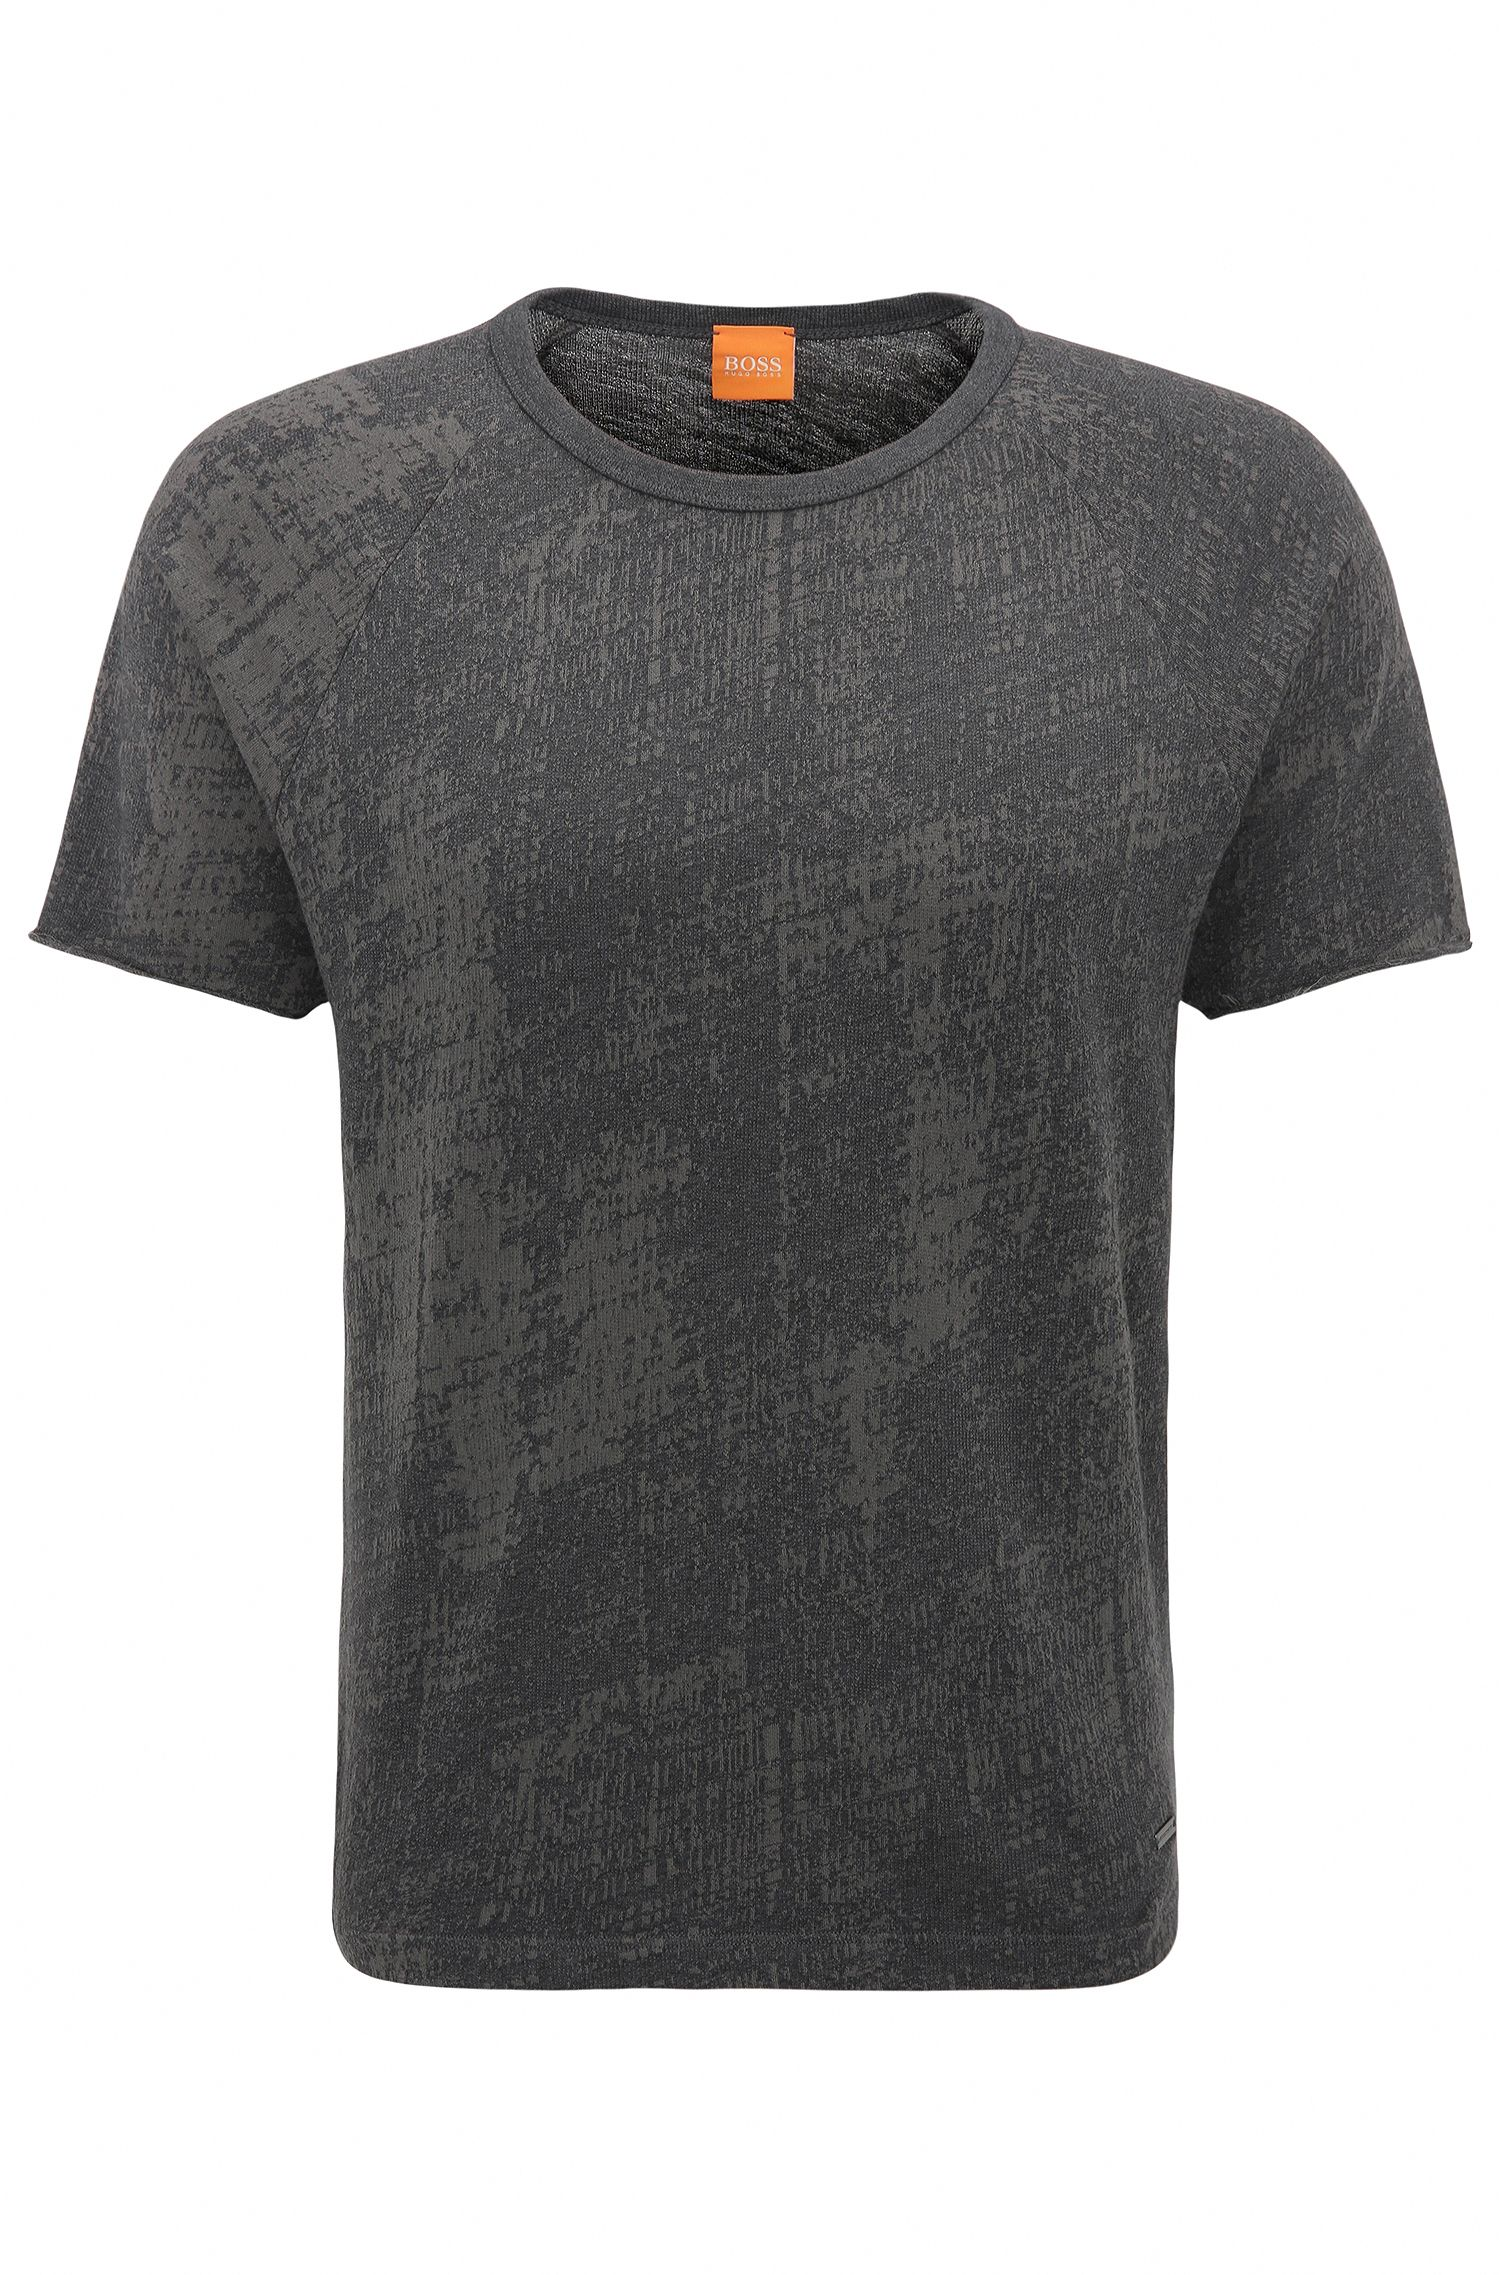 T-shirt Relaxed Fit en jacquard de coton